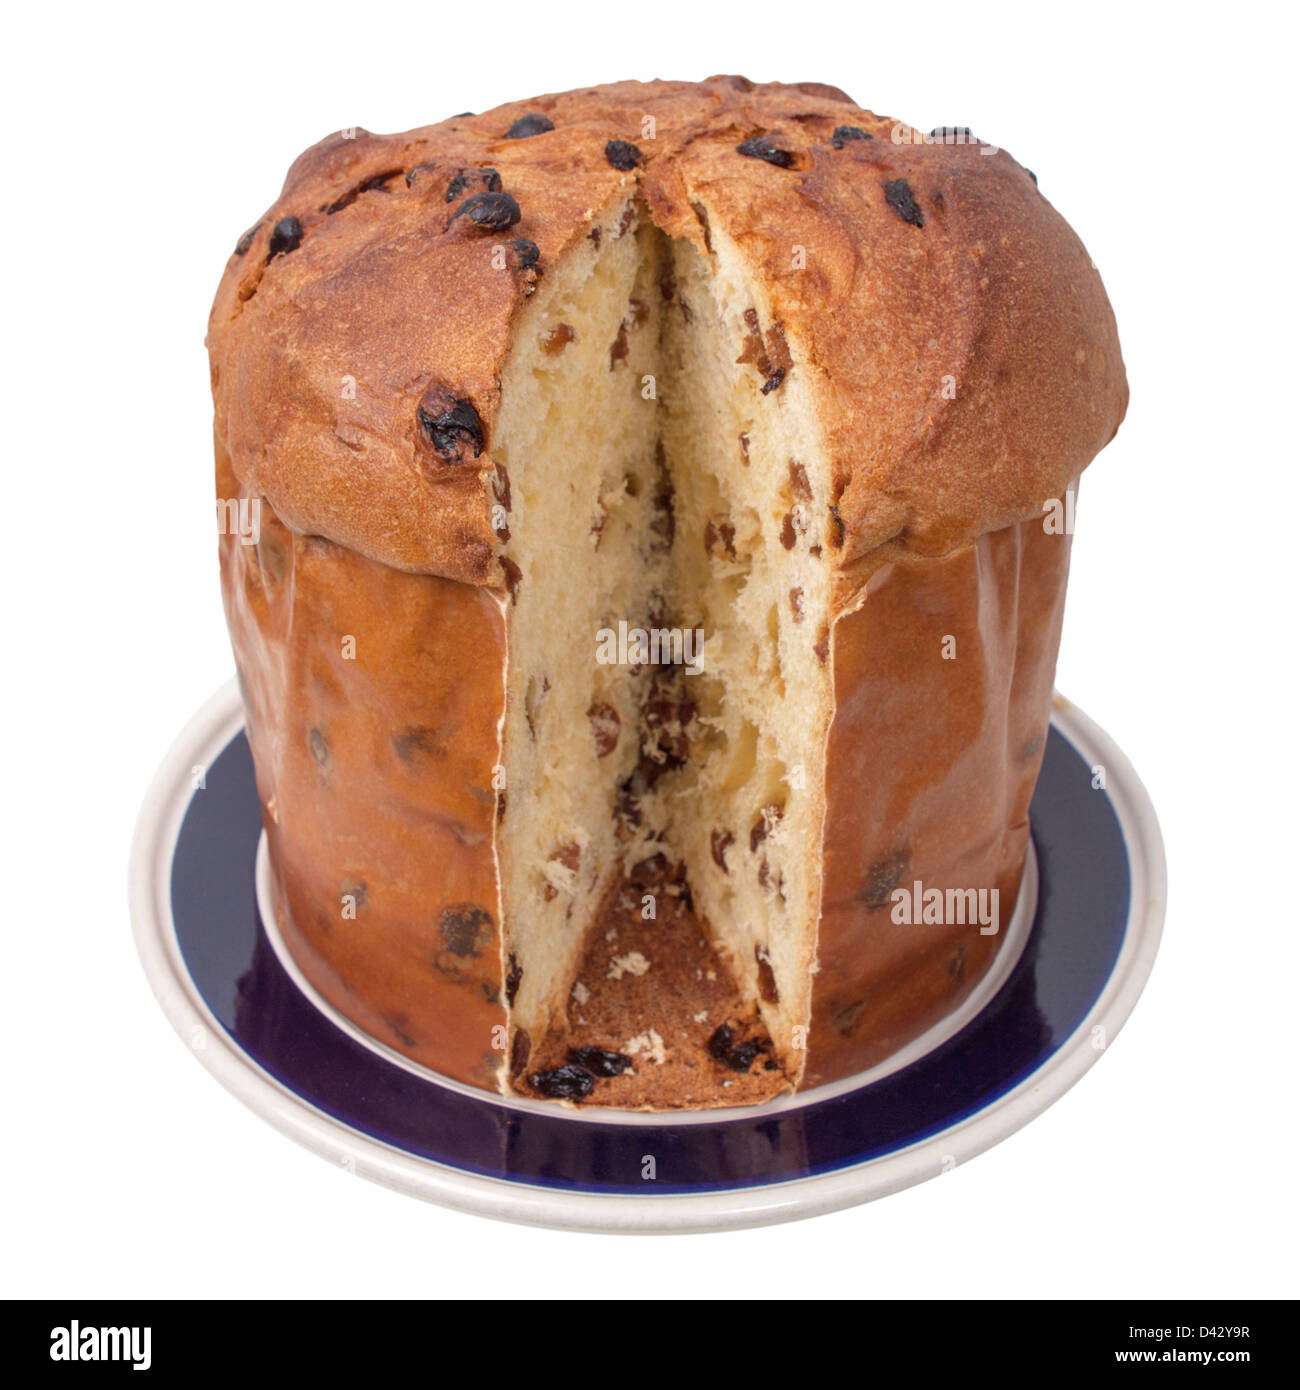 Panettone bread from Milan - Stock Image